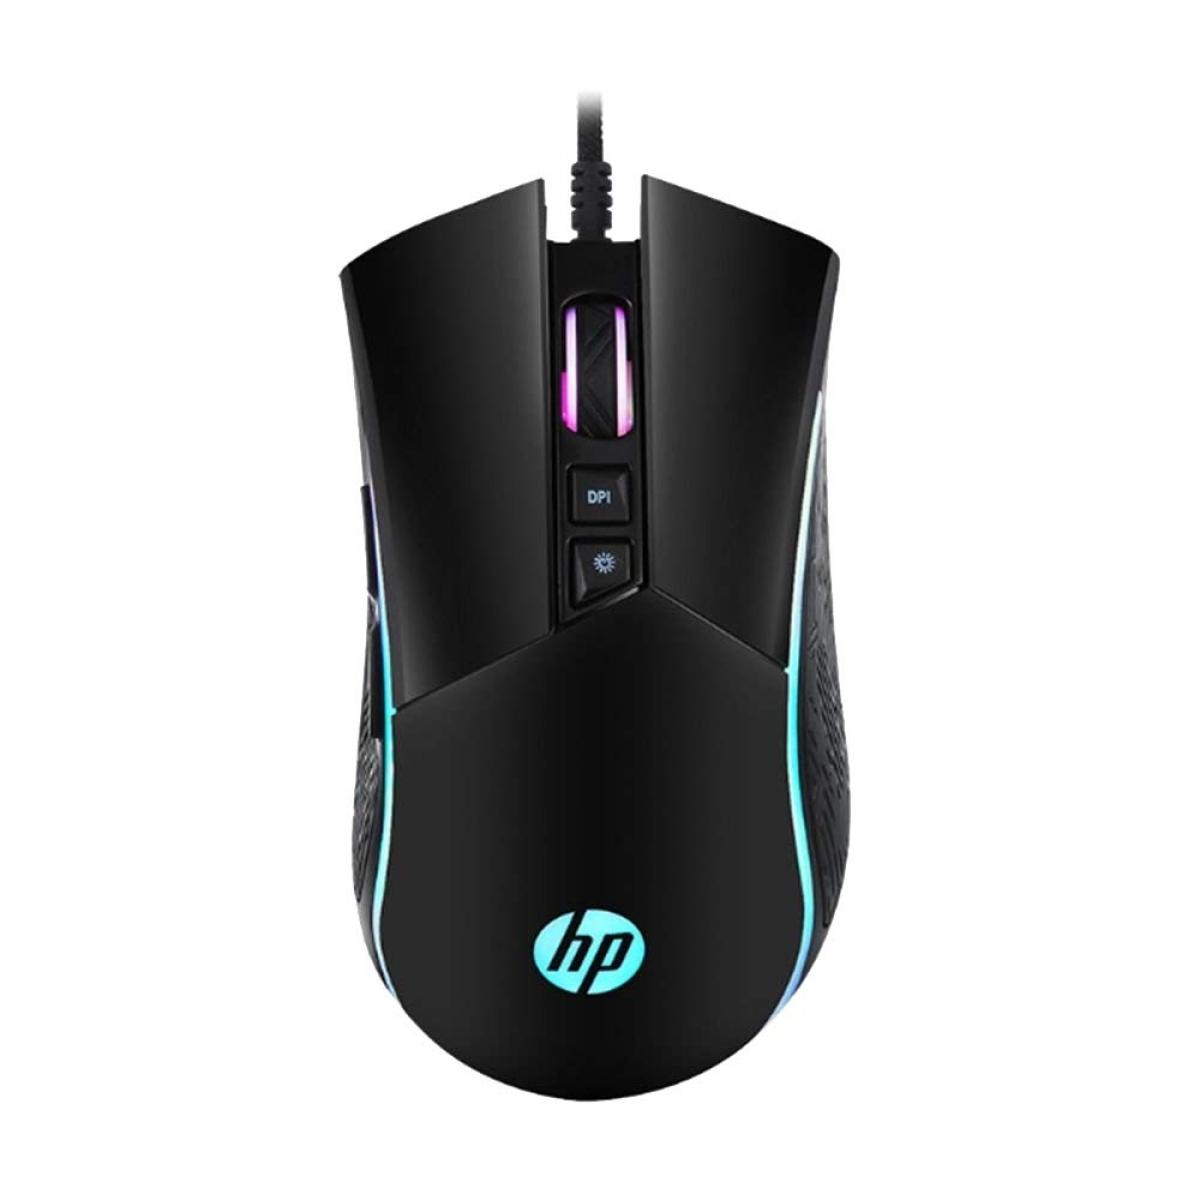 HP Gaming Mouse m220 photo